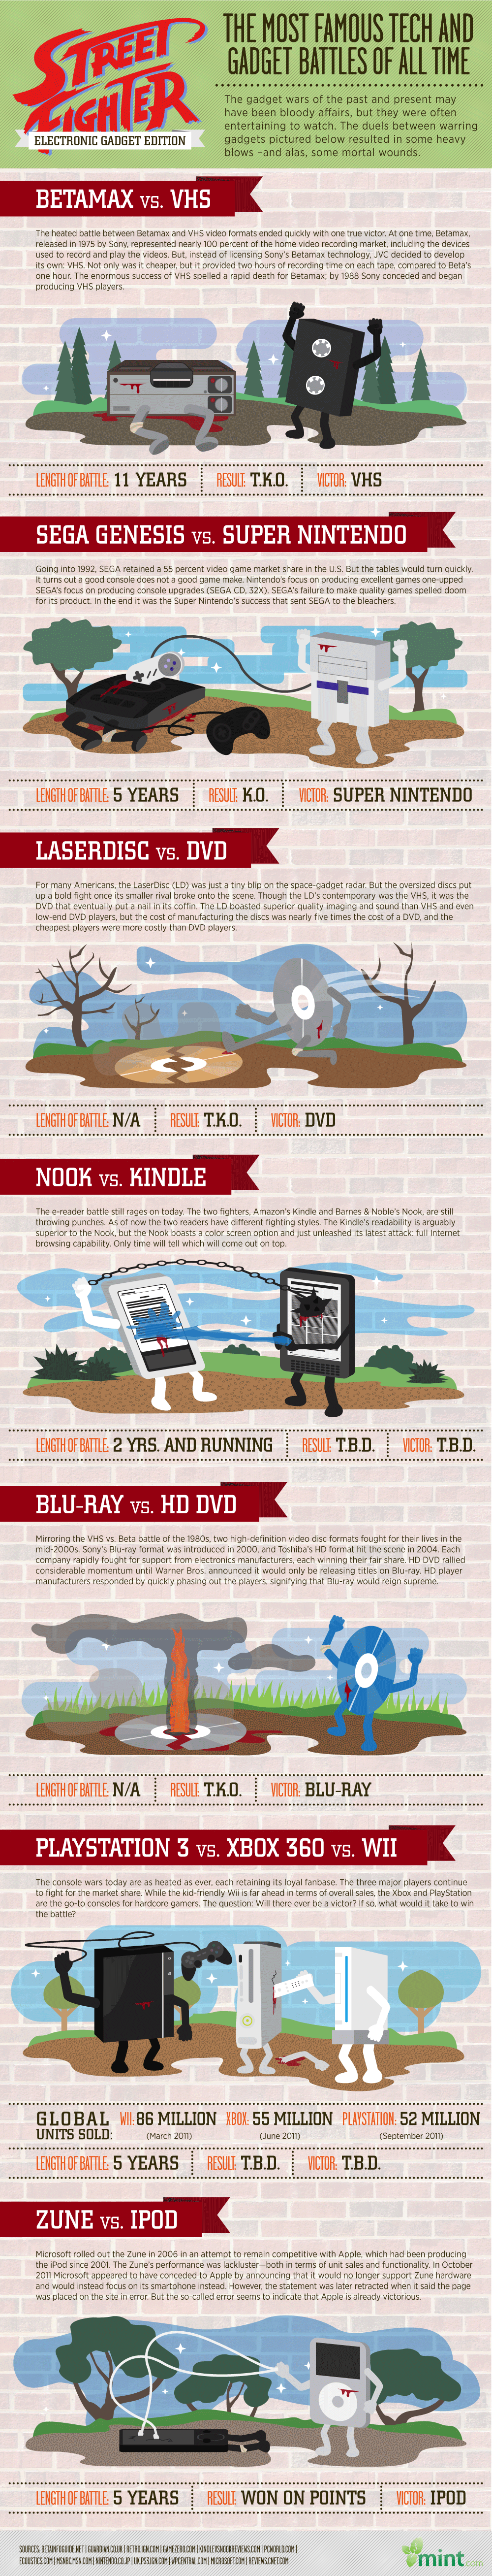 The Most Famous Gadget Battles Of All Time [Infographic]